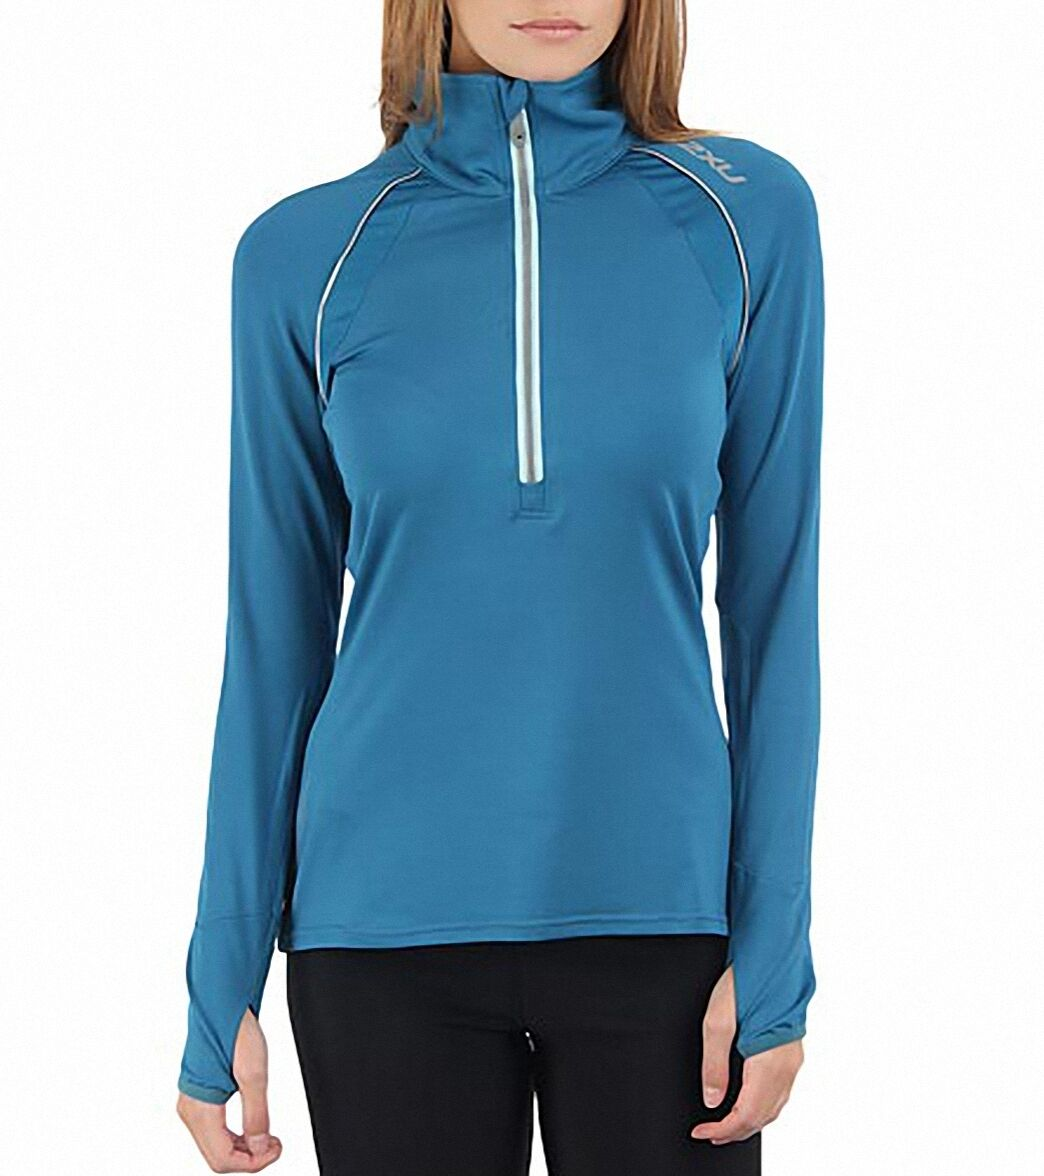 2XU Micro Thermal Top Women Running WR2172a Rain  Frost XS  lowest prices